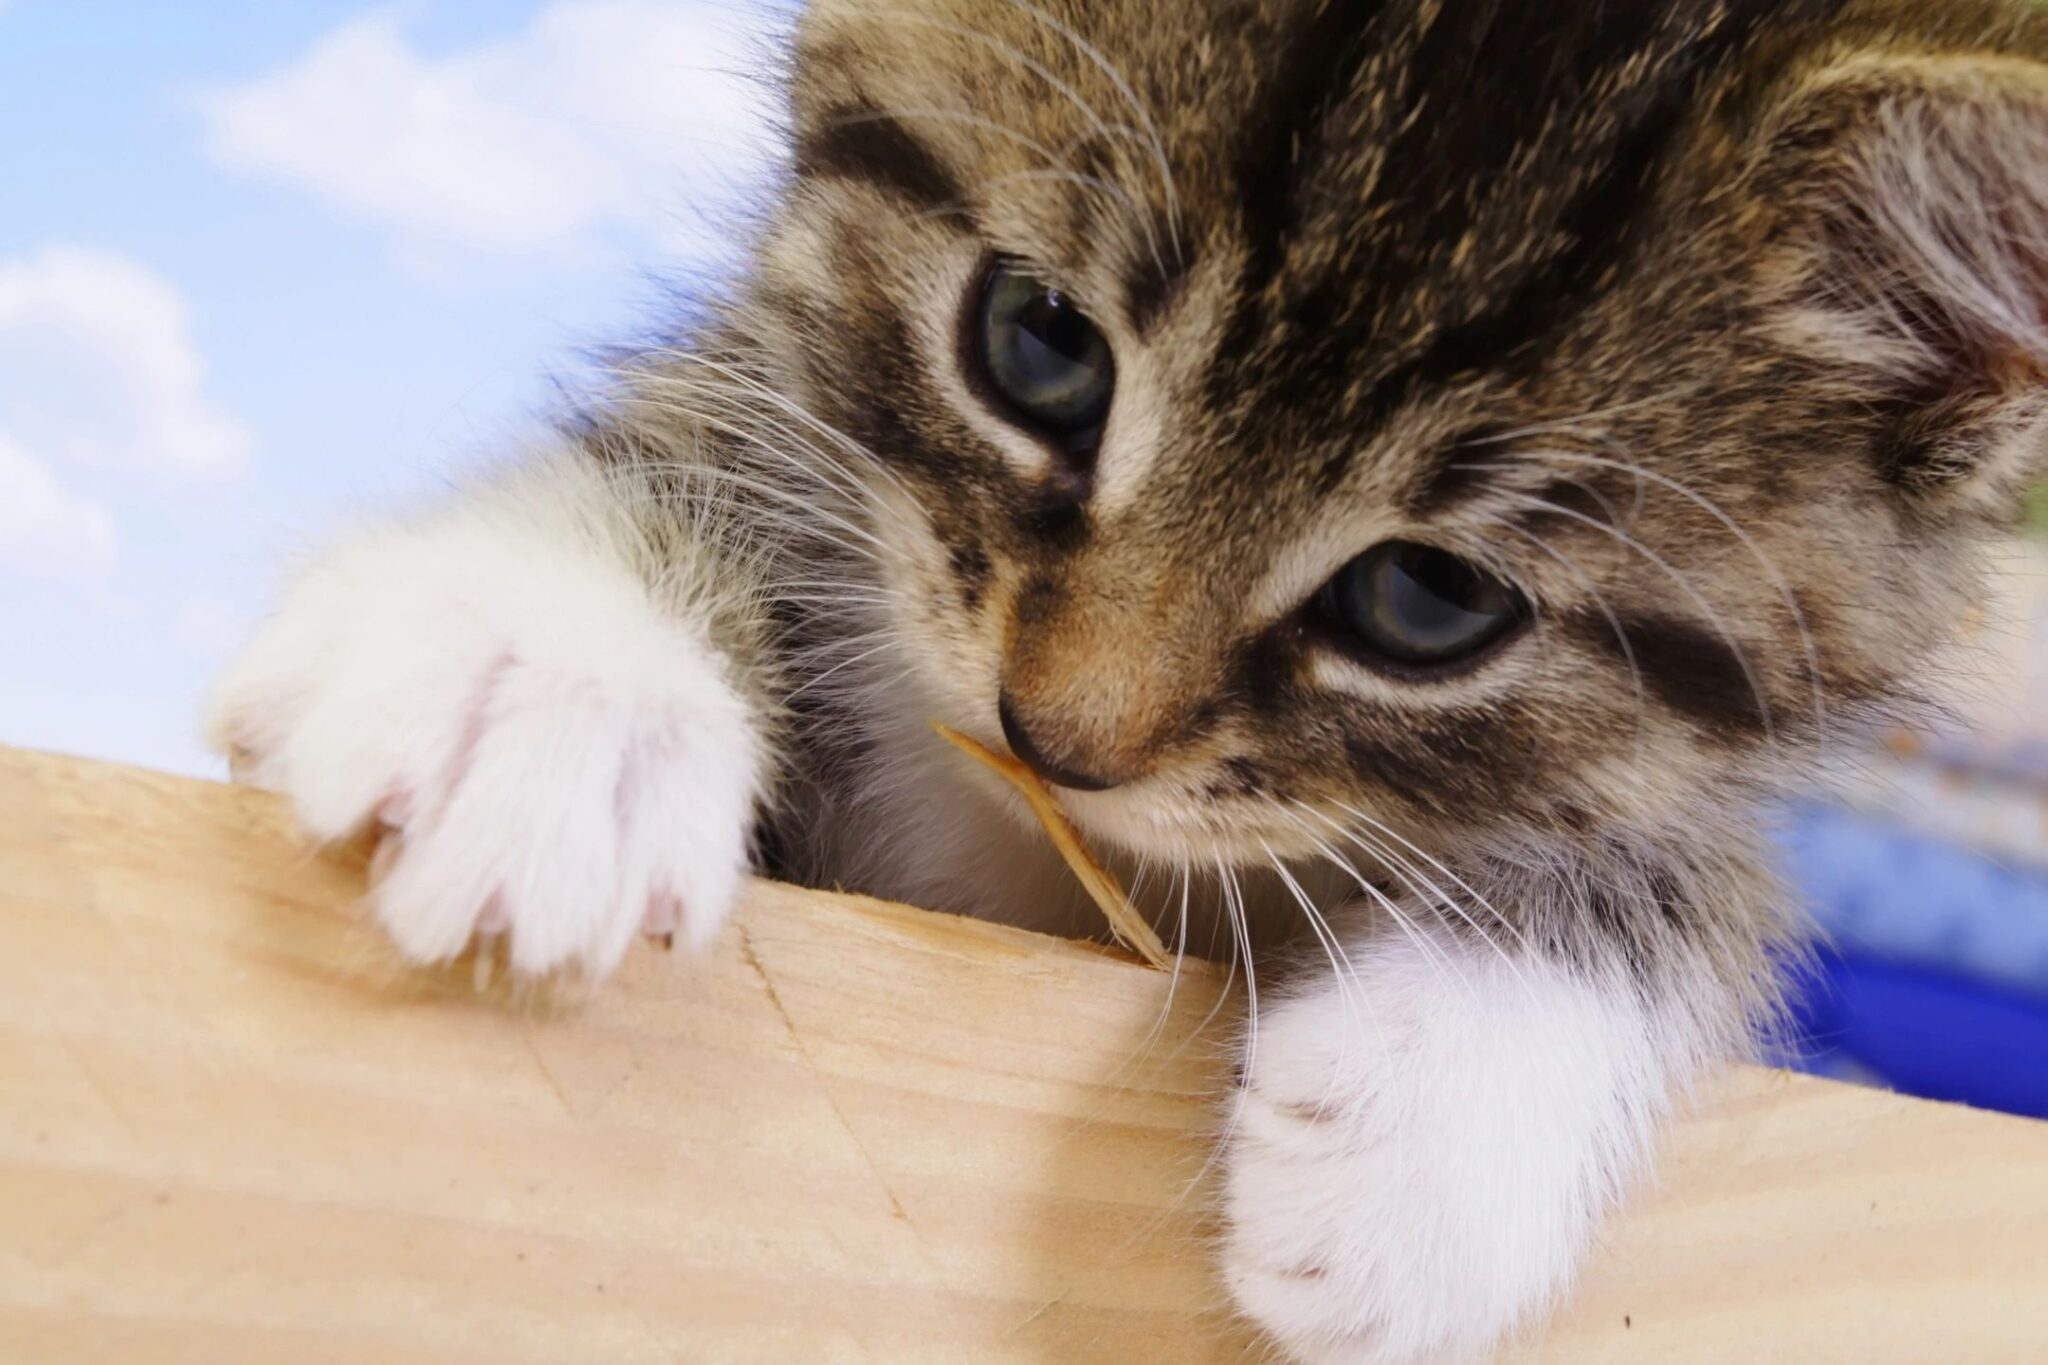 cat-specific music reduces stress in cats